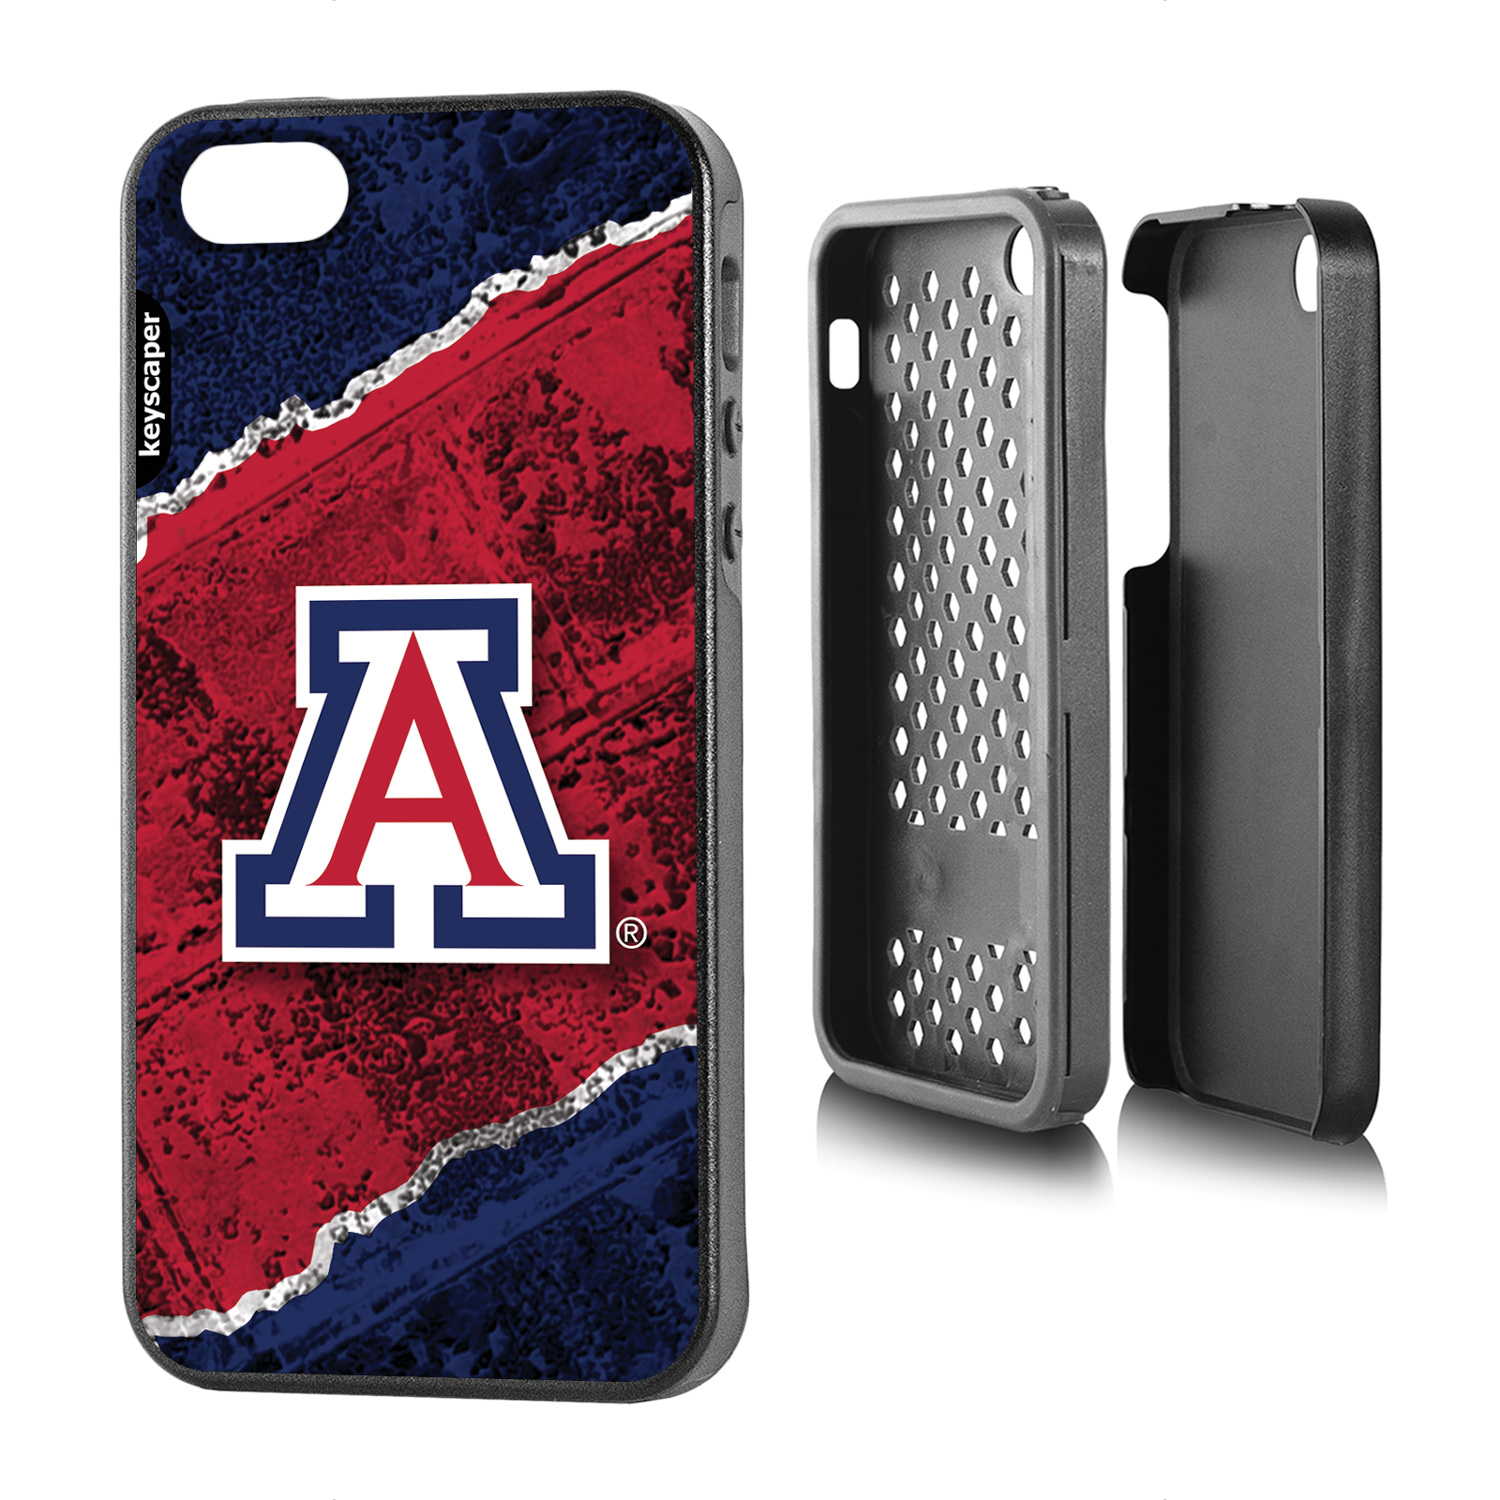 Arizona Wildcats Apple iPhone 5/5s Rugged Case